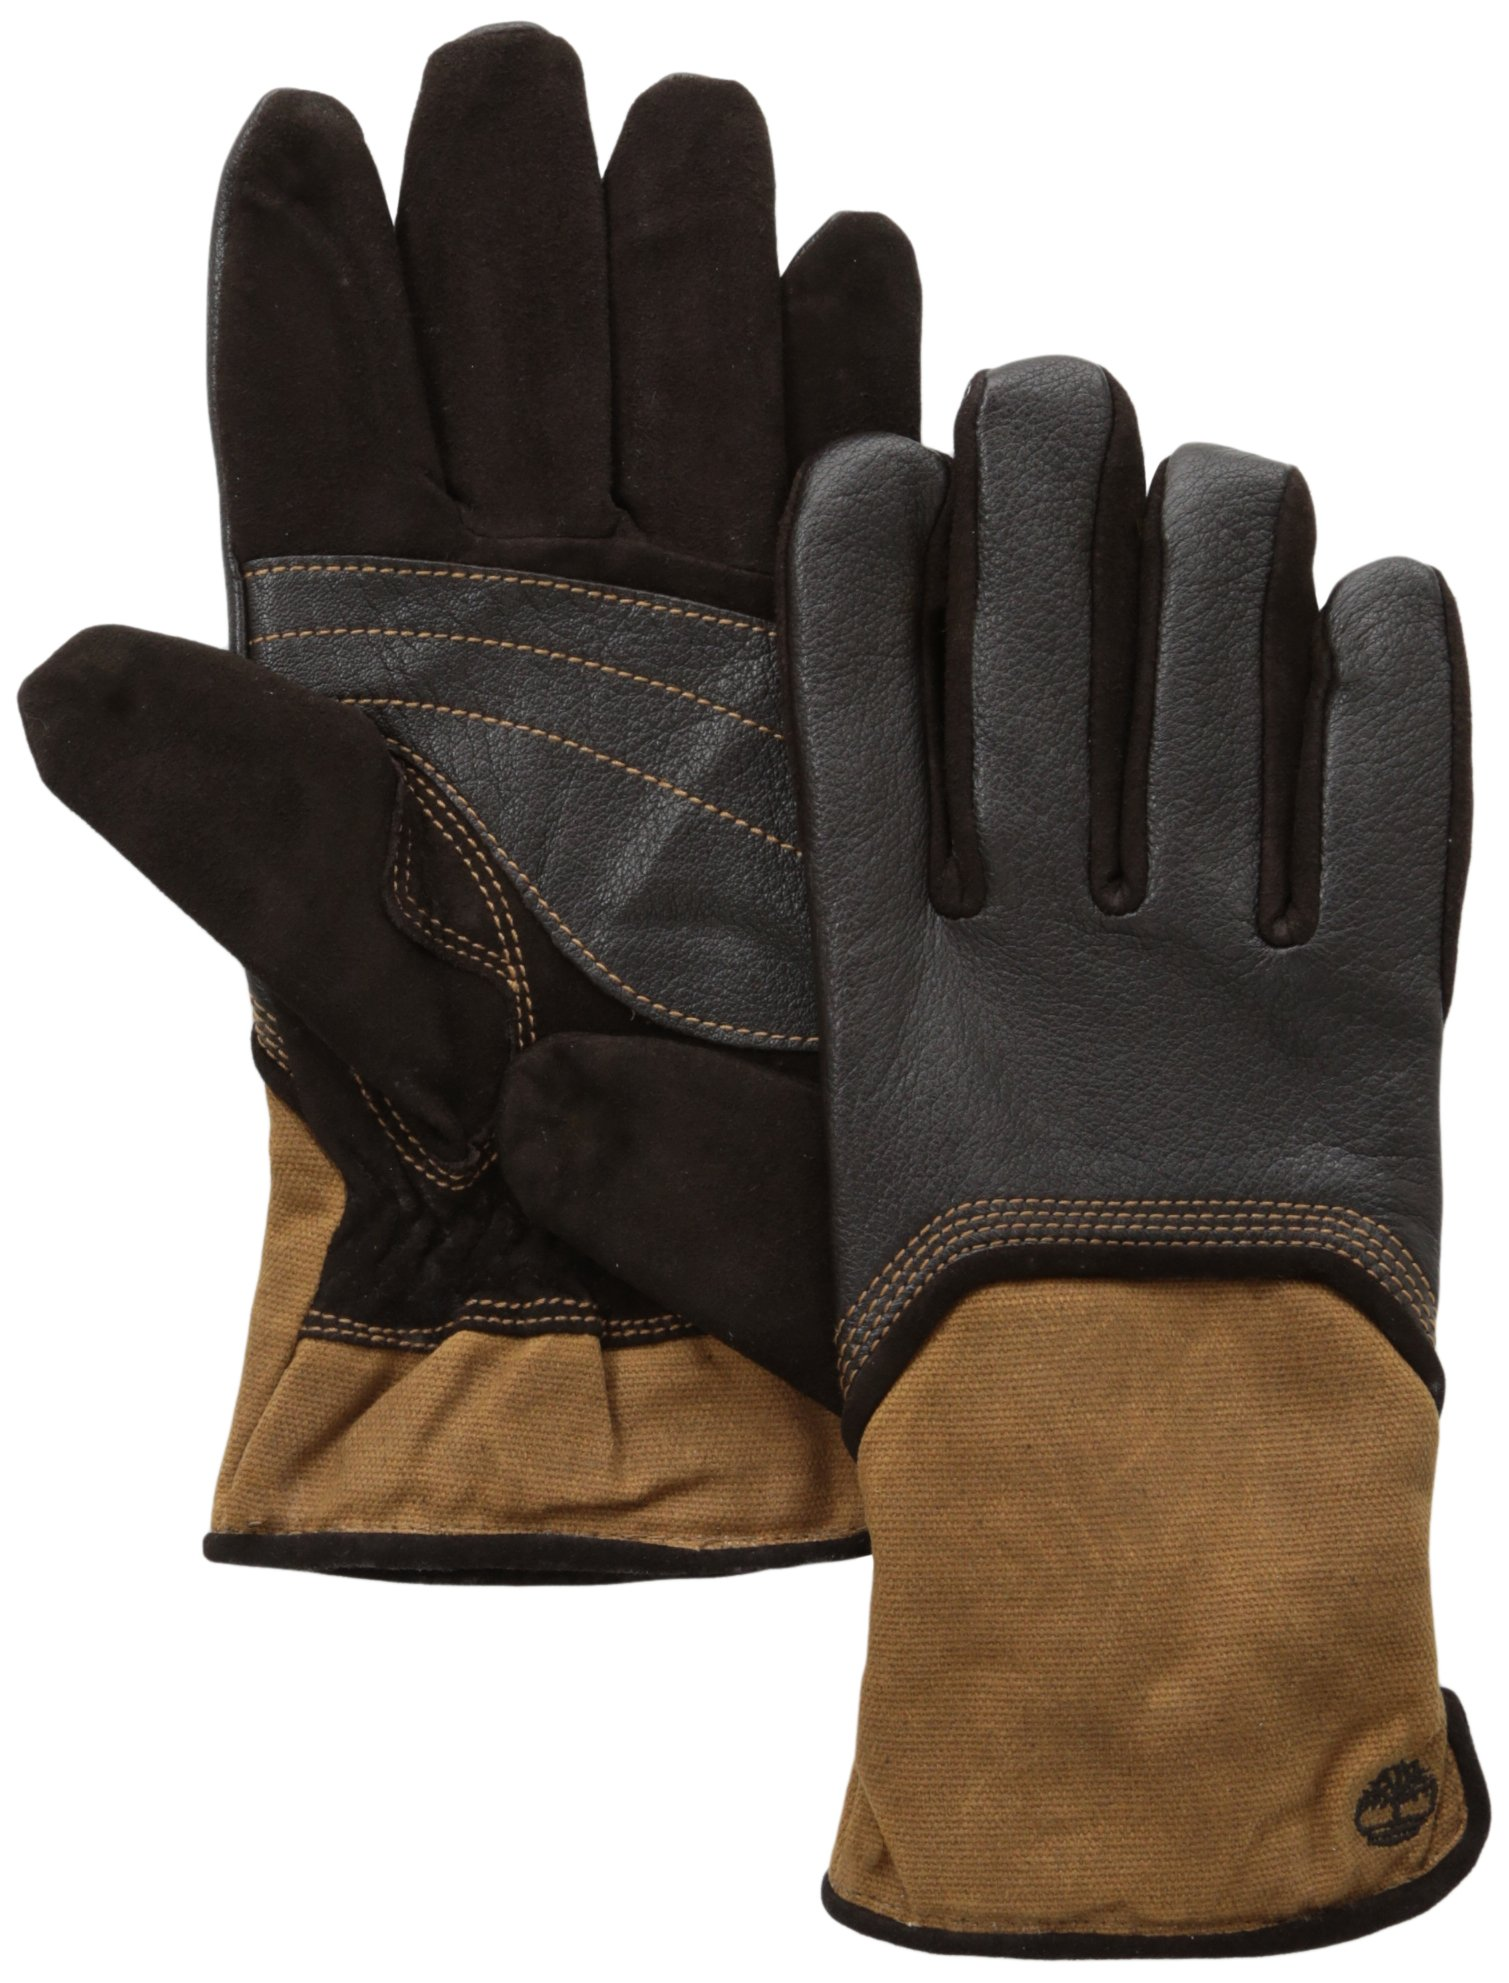 Timberland Men's Deerskin and Waxed Cotton Canvas Gloves